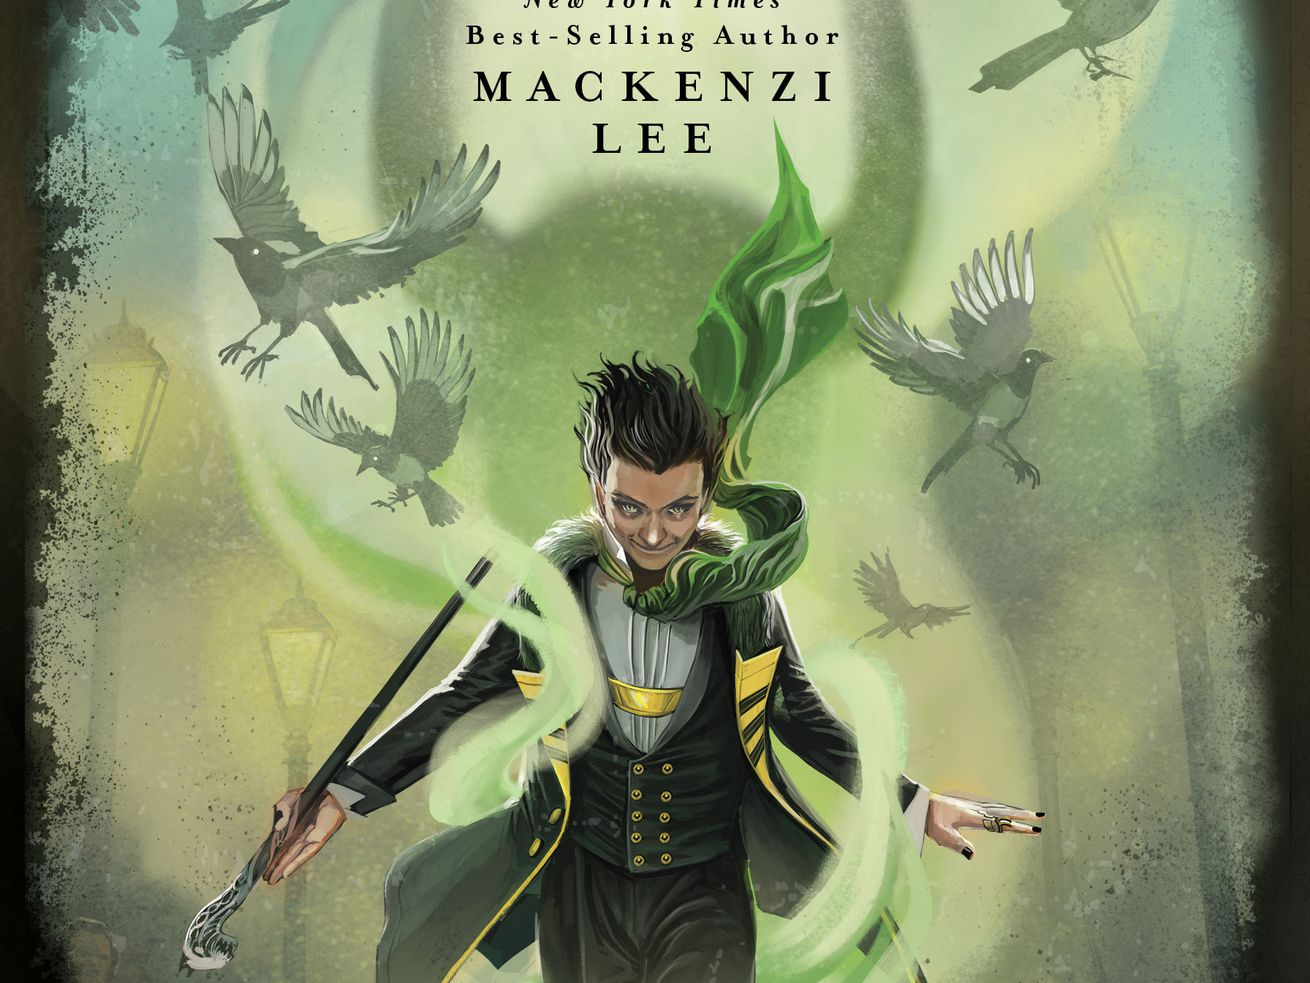 """Utah author Mackenzi Lee takes on the task of telling teenager Loki's story in her young adult book """"Loki: Where Mischief Lies."""""""